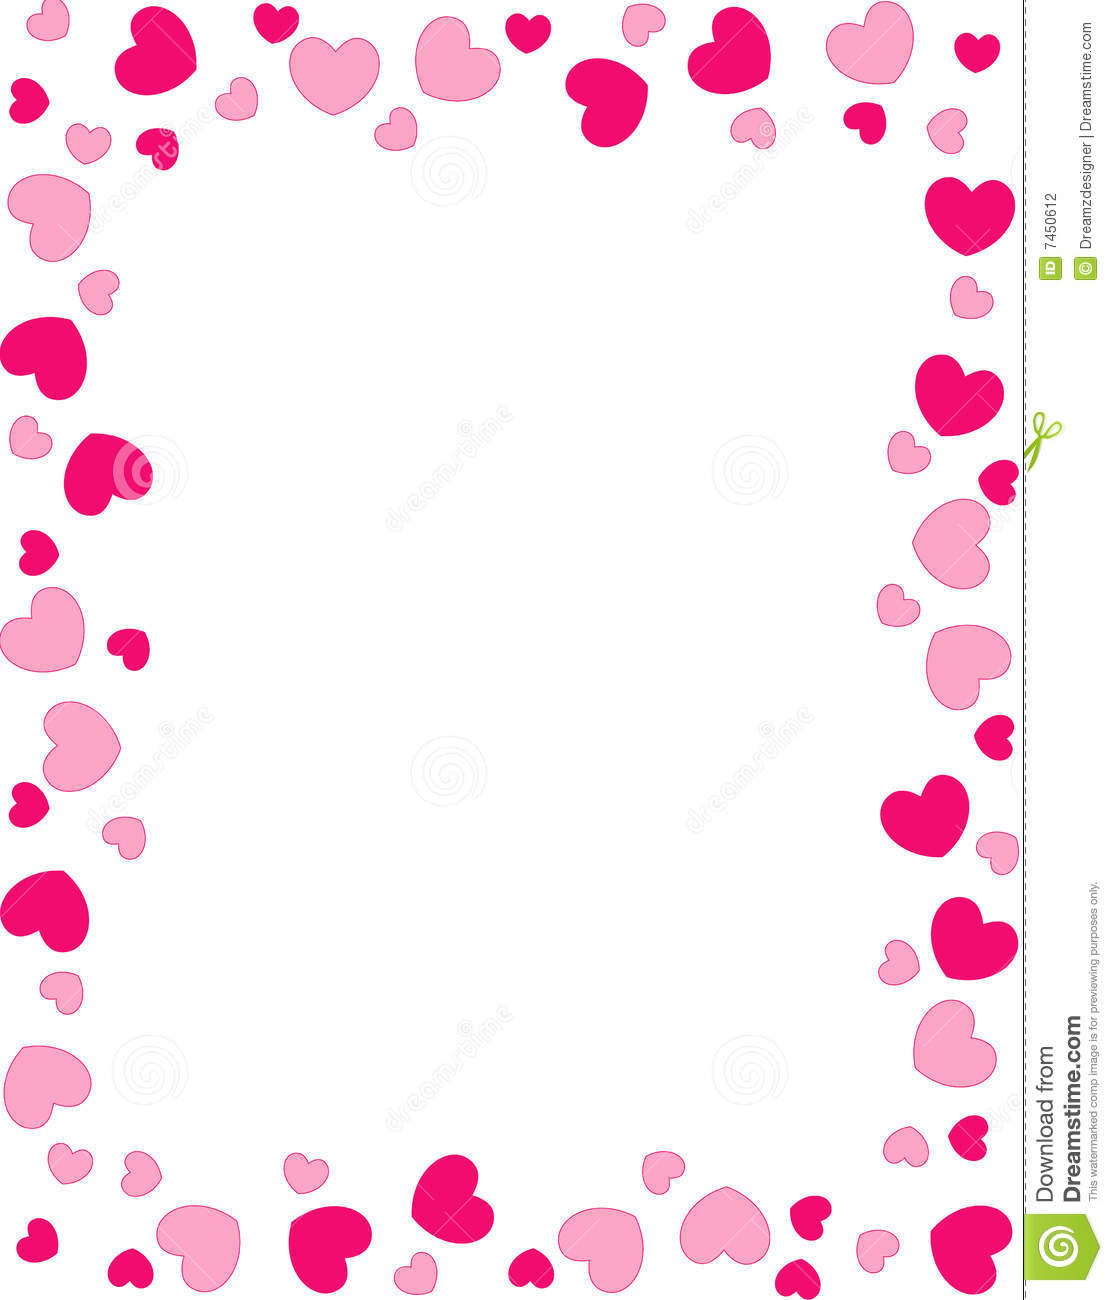 Baby Girl Wallpaper Borders Pink And Purple Red Hearts Border Stock Vector Illustration Of Inviting